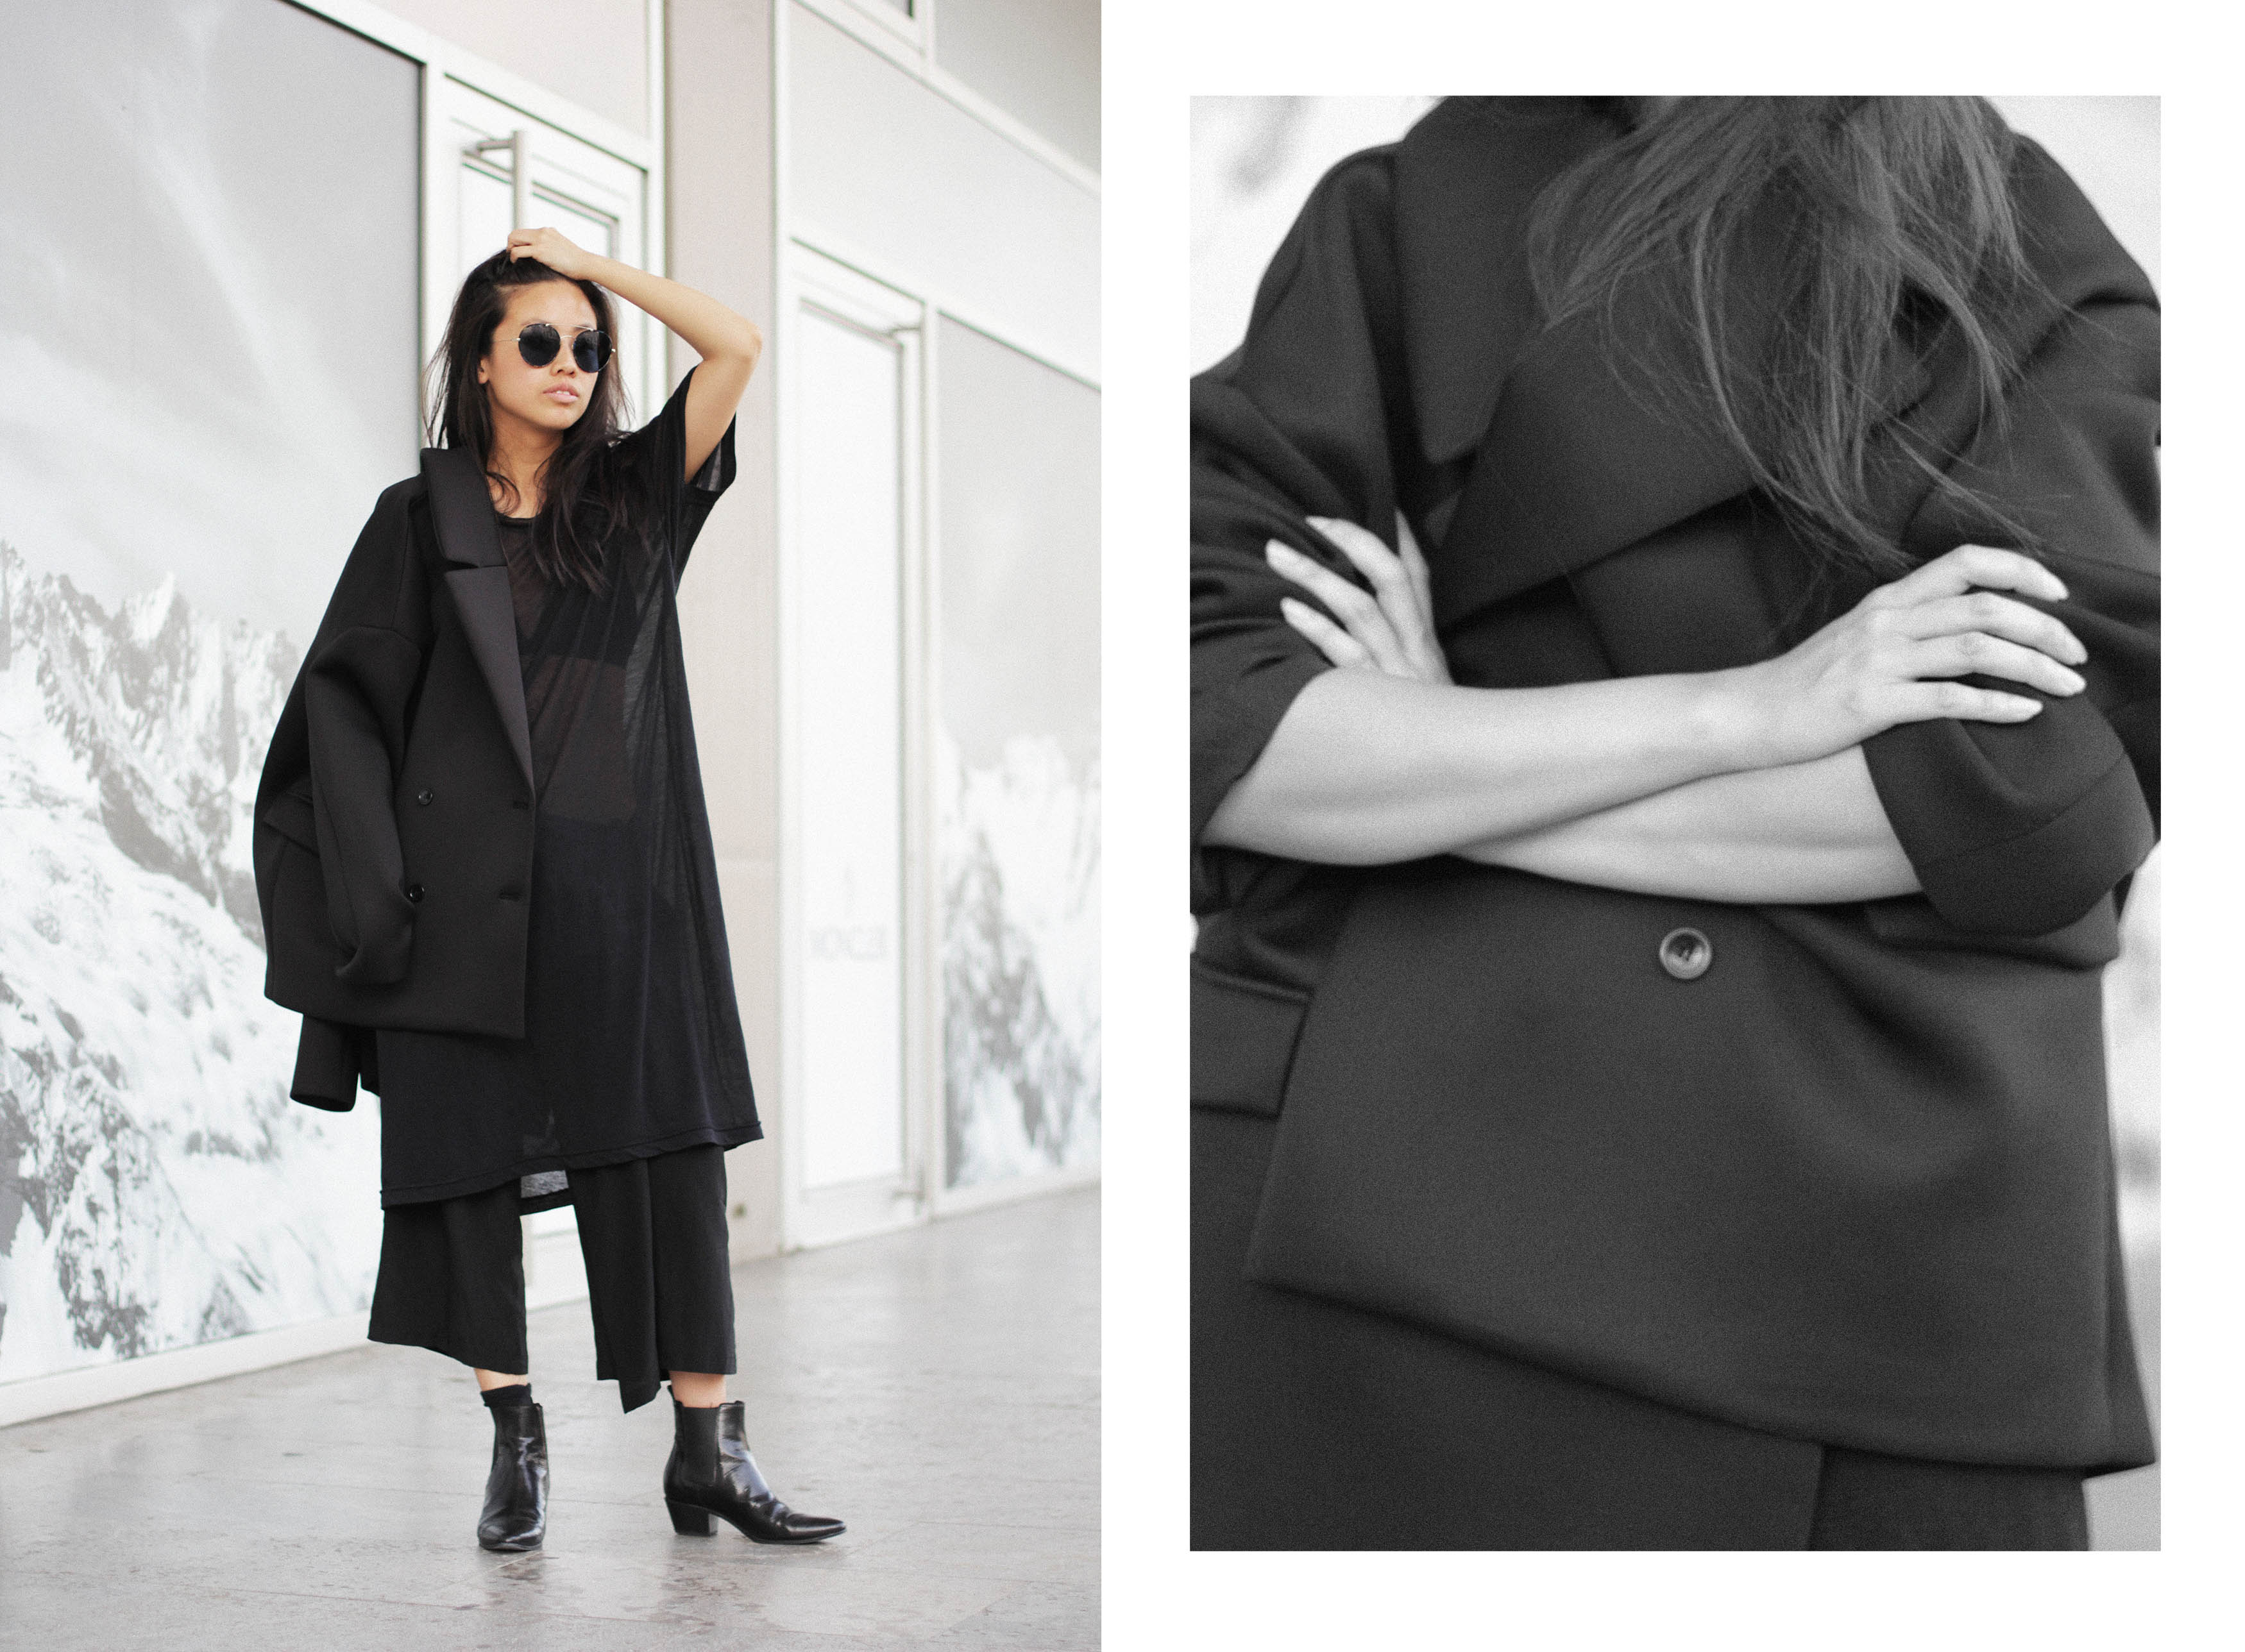 IHEARTALICE – Fashion & Travel Blog from Berlin/Germany by Alice M. Huynh: All Black Everything Look with Weekday Neopren Jacket, OAK NY T-Shirt Dress, Yohji Yamamoto Silk Pants, Prada Shades & Saint Laurent Paris Chelsea Boots